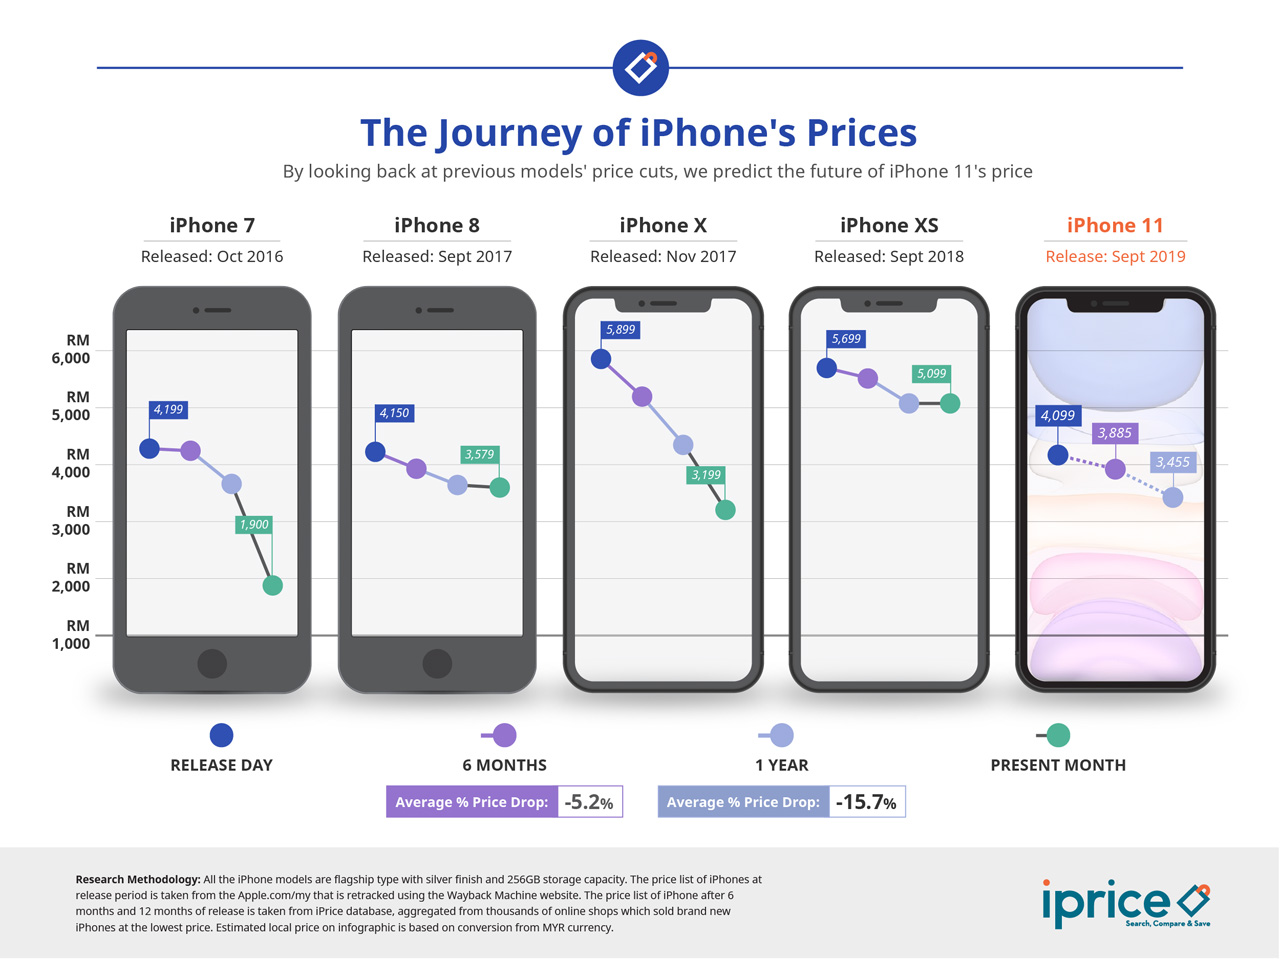 You can save as much as RM644 if you purchase iPhone 11 one